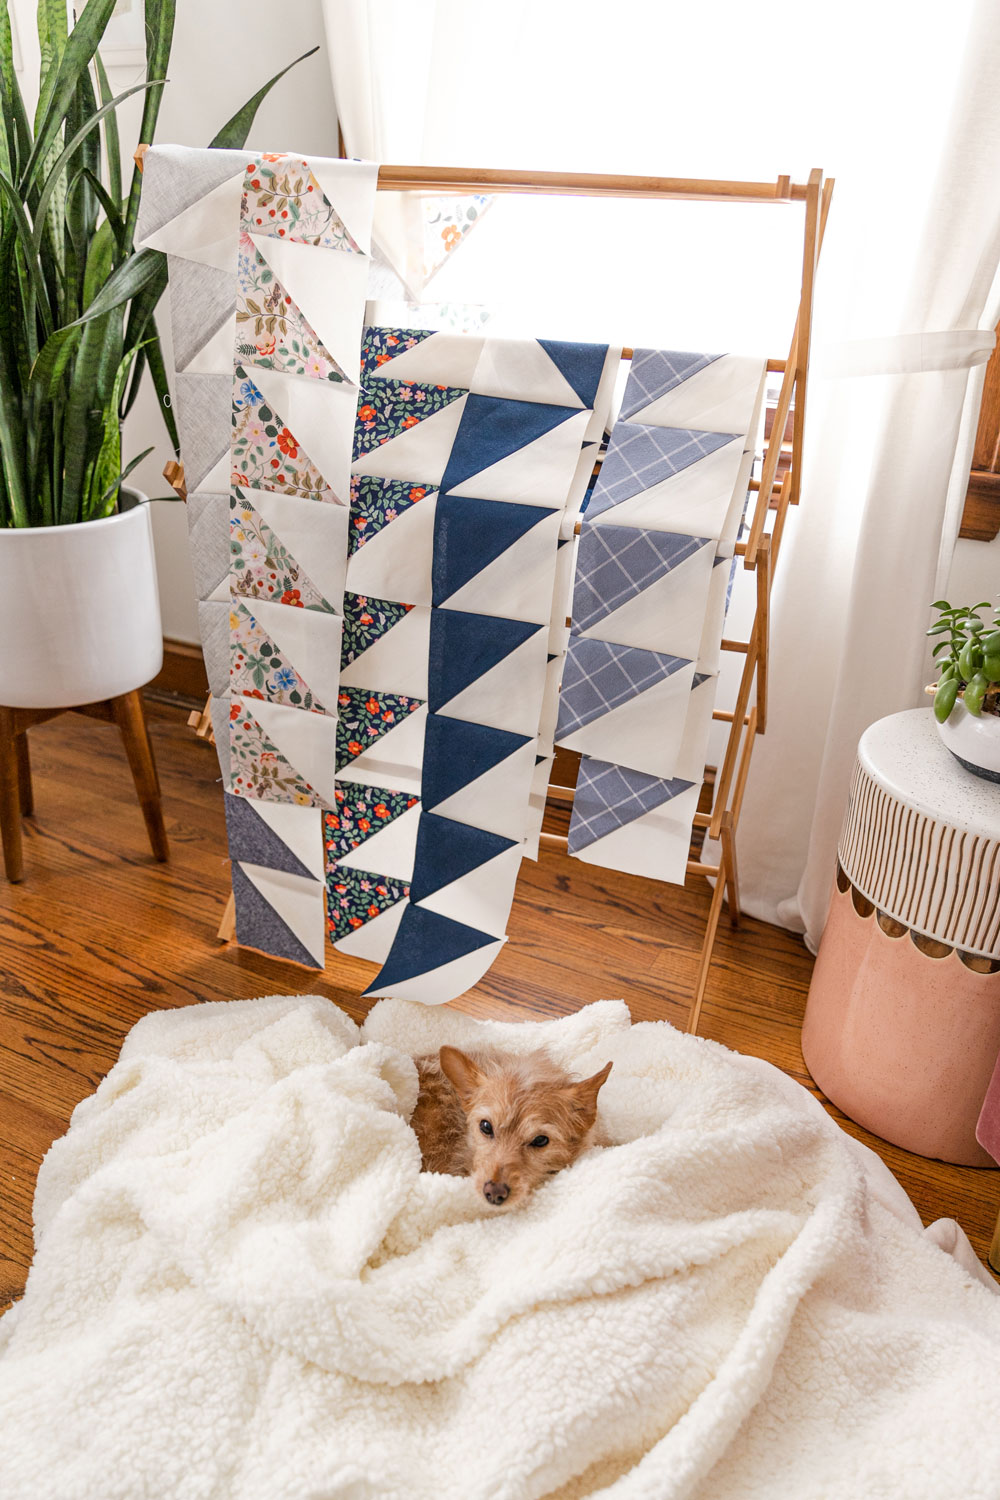 The Gather quilt sew along is an online quilting community experience! We will make this modern quilt pattern together – one week at a time. suzyquilts.com #quiltalong #modernquilt